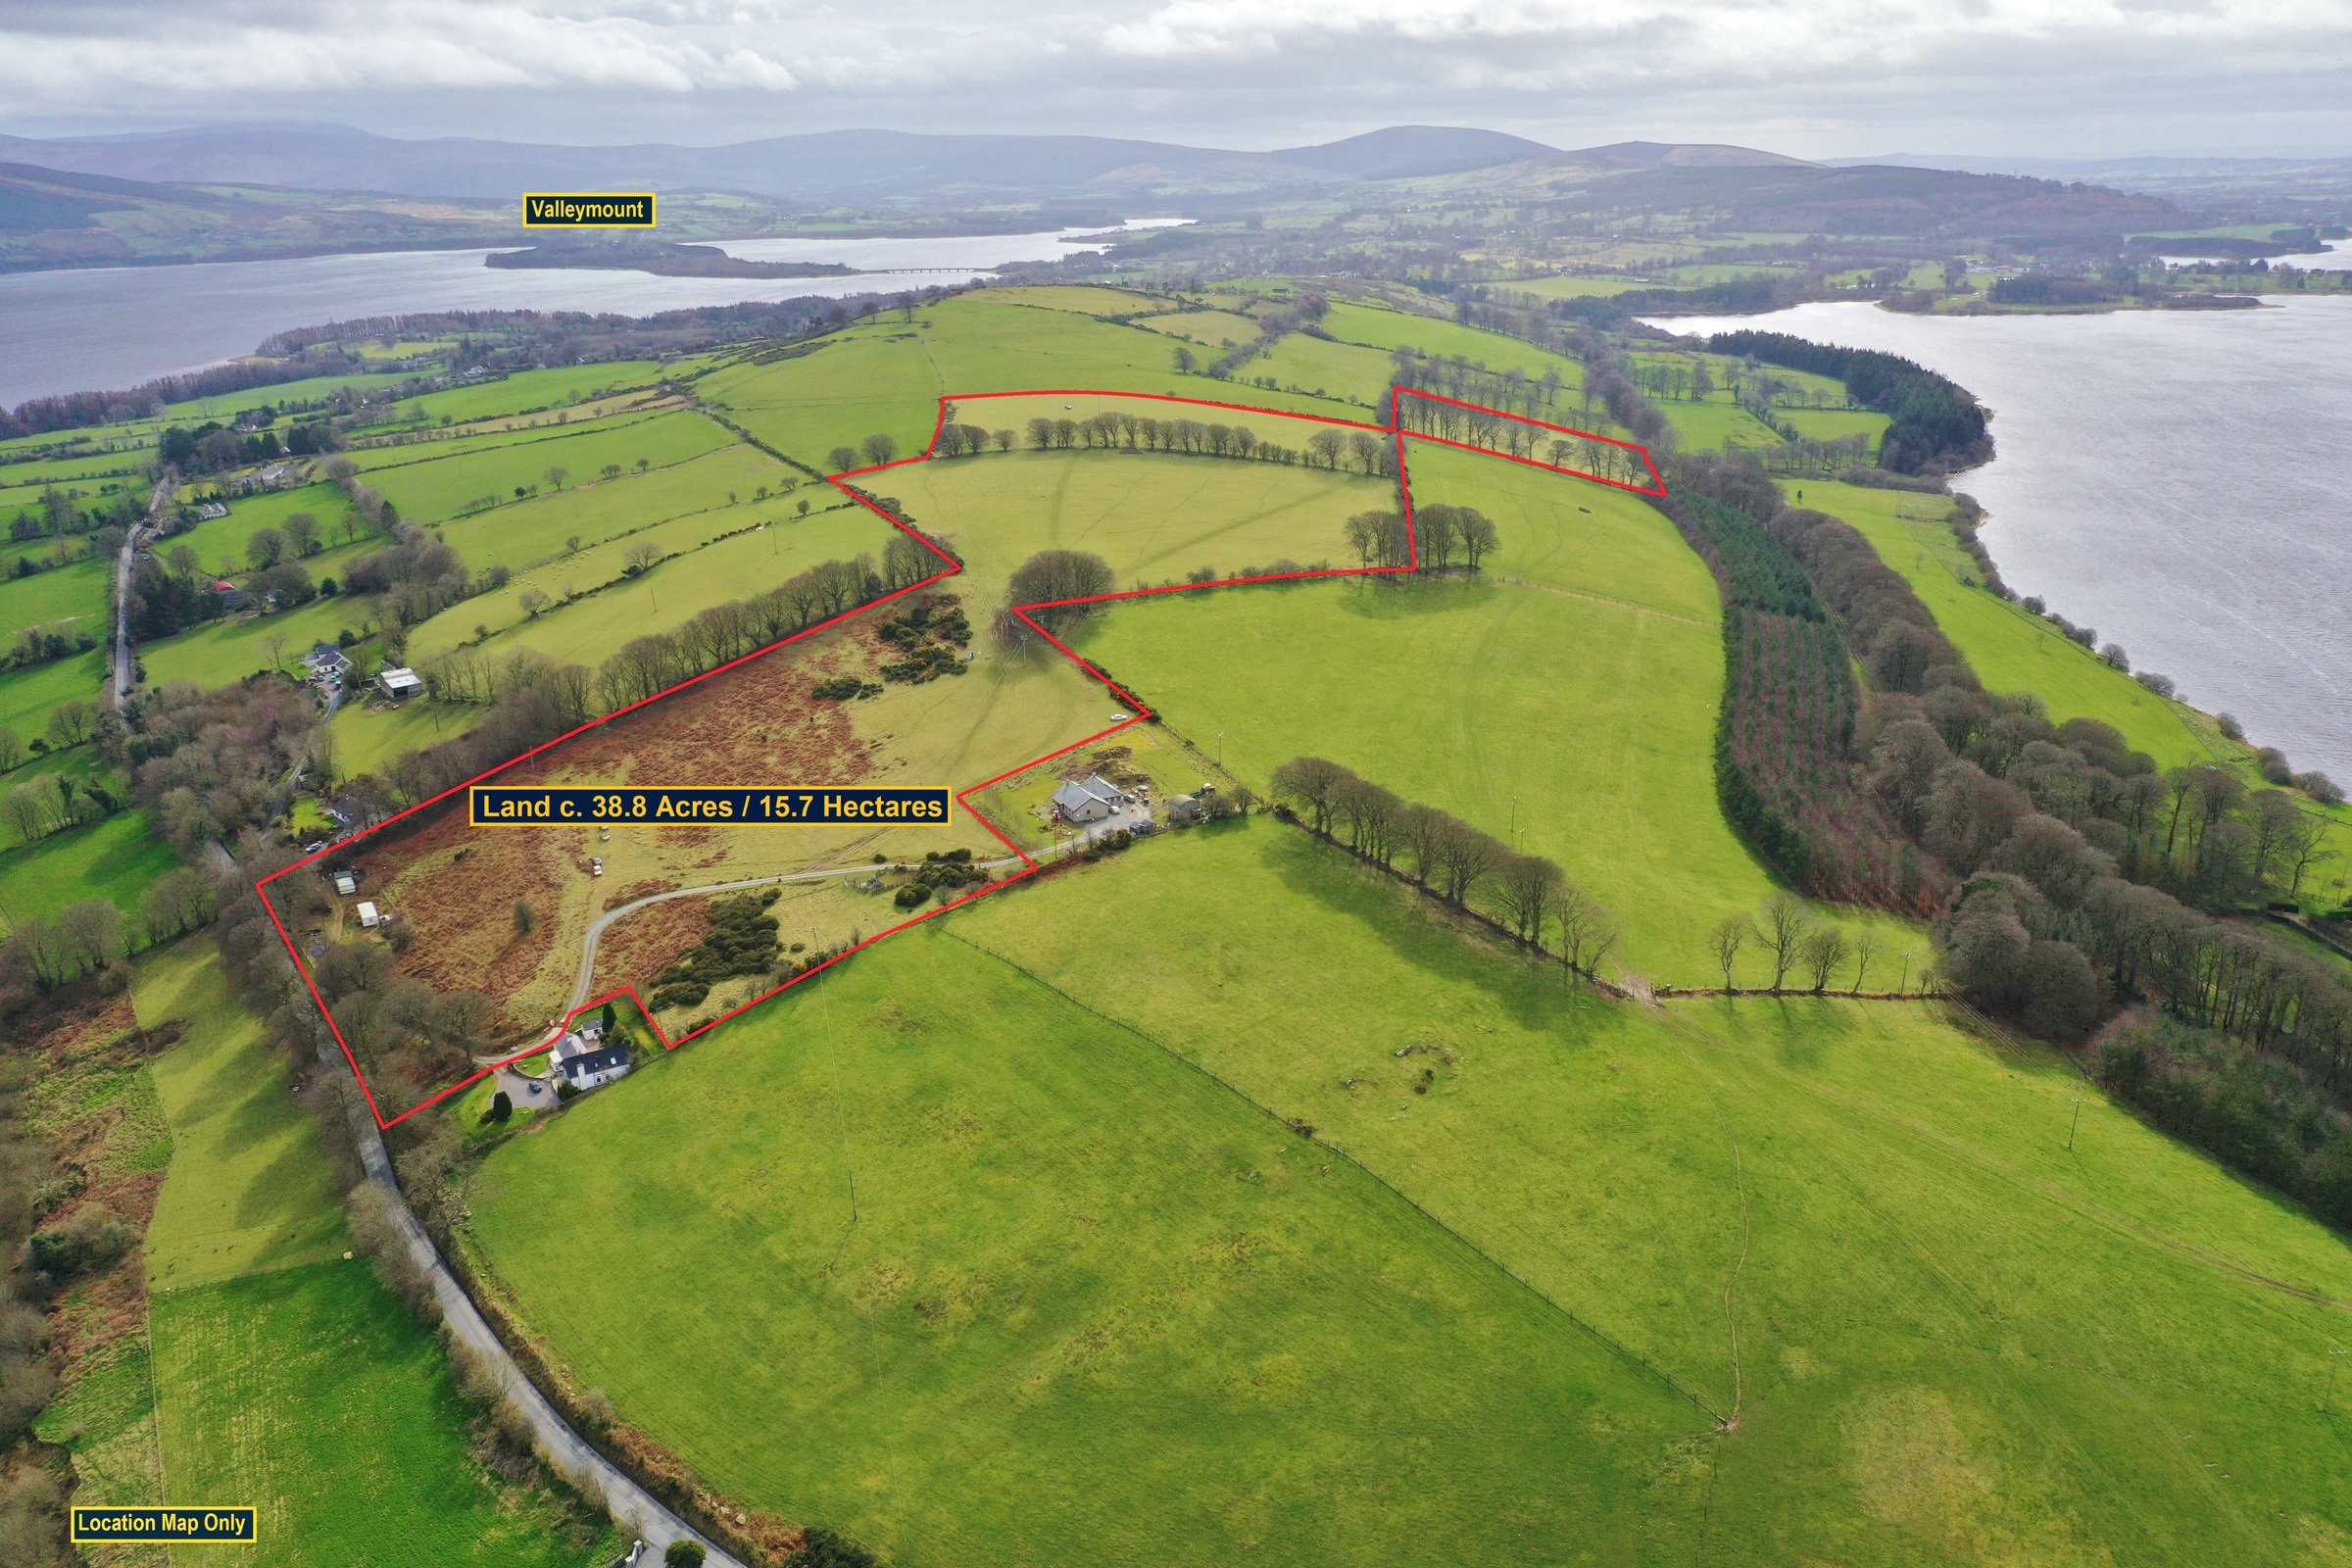 Land C. 38.8 Acres, Baltyboys, Blessington, Co. Wicklow